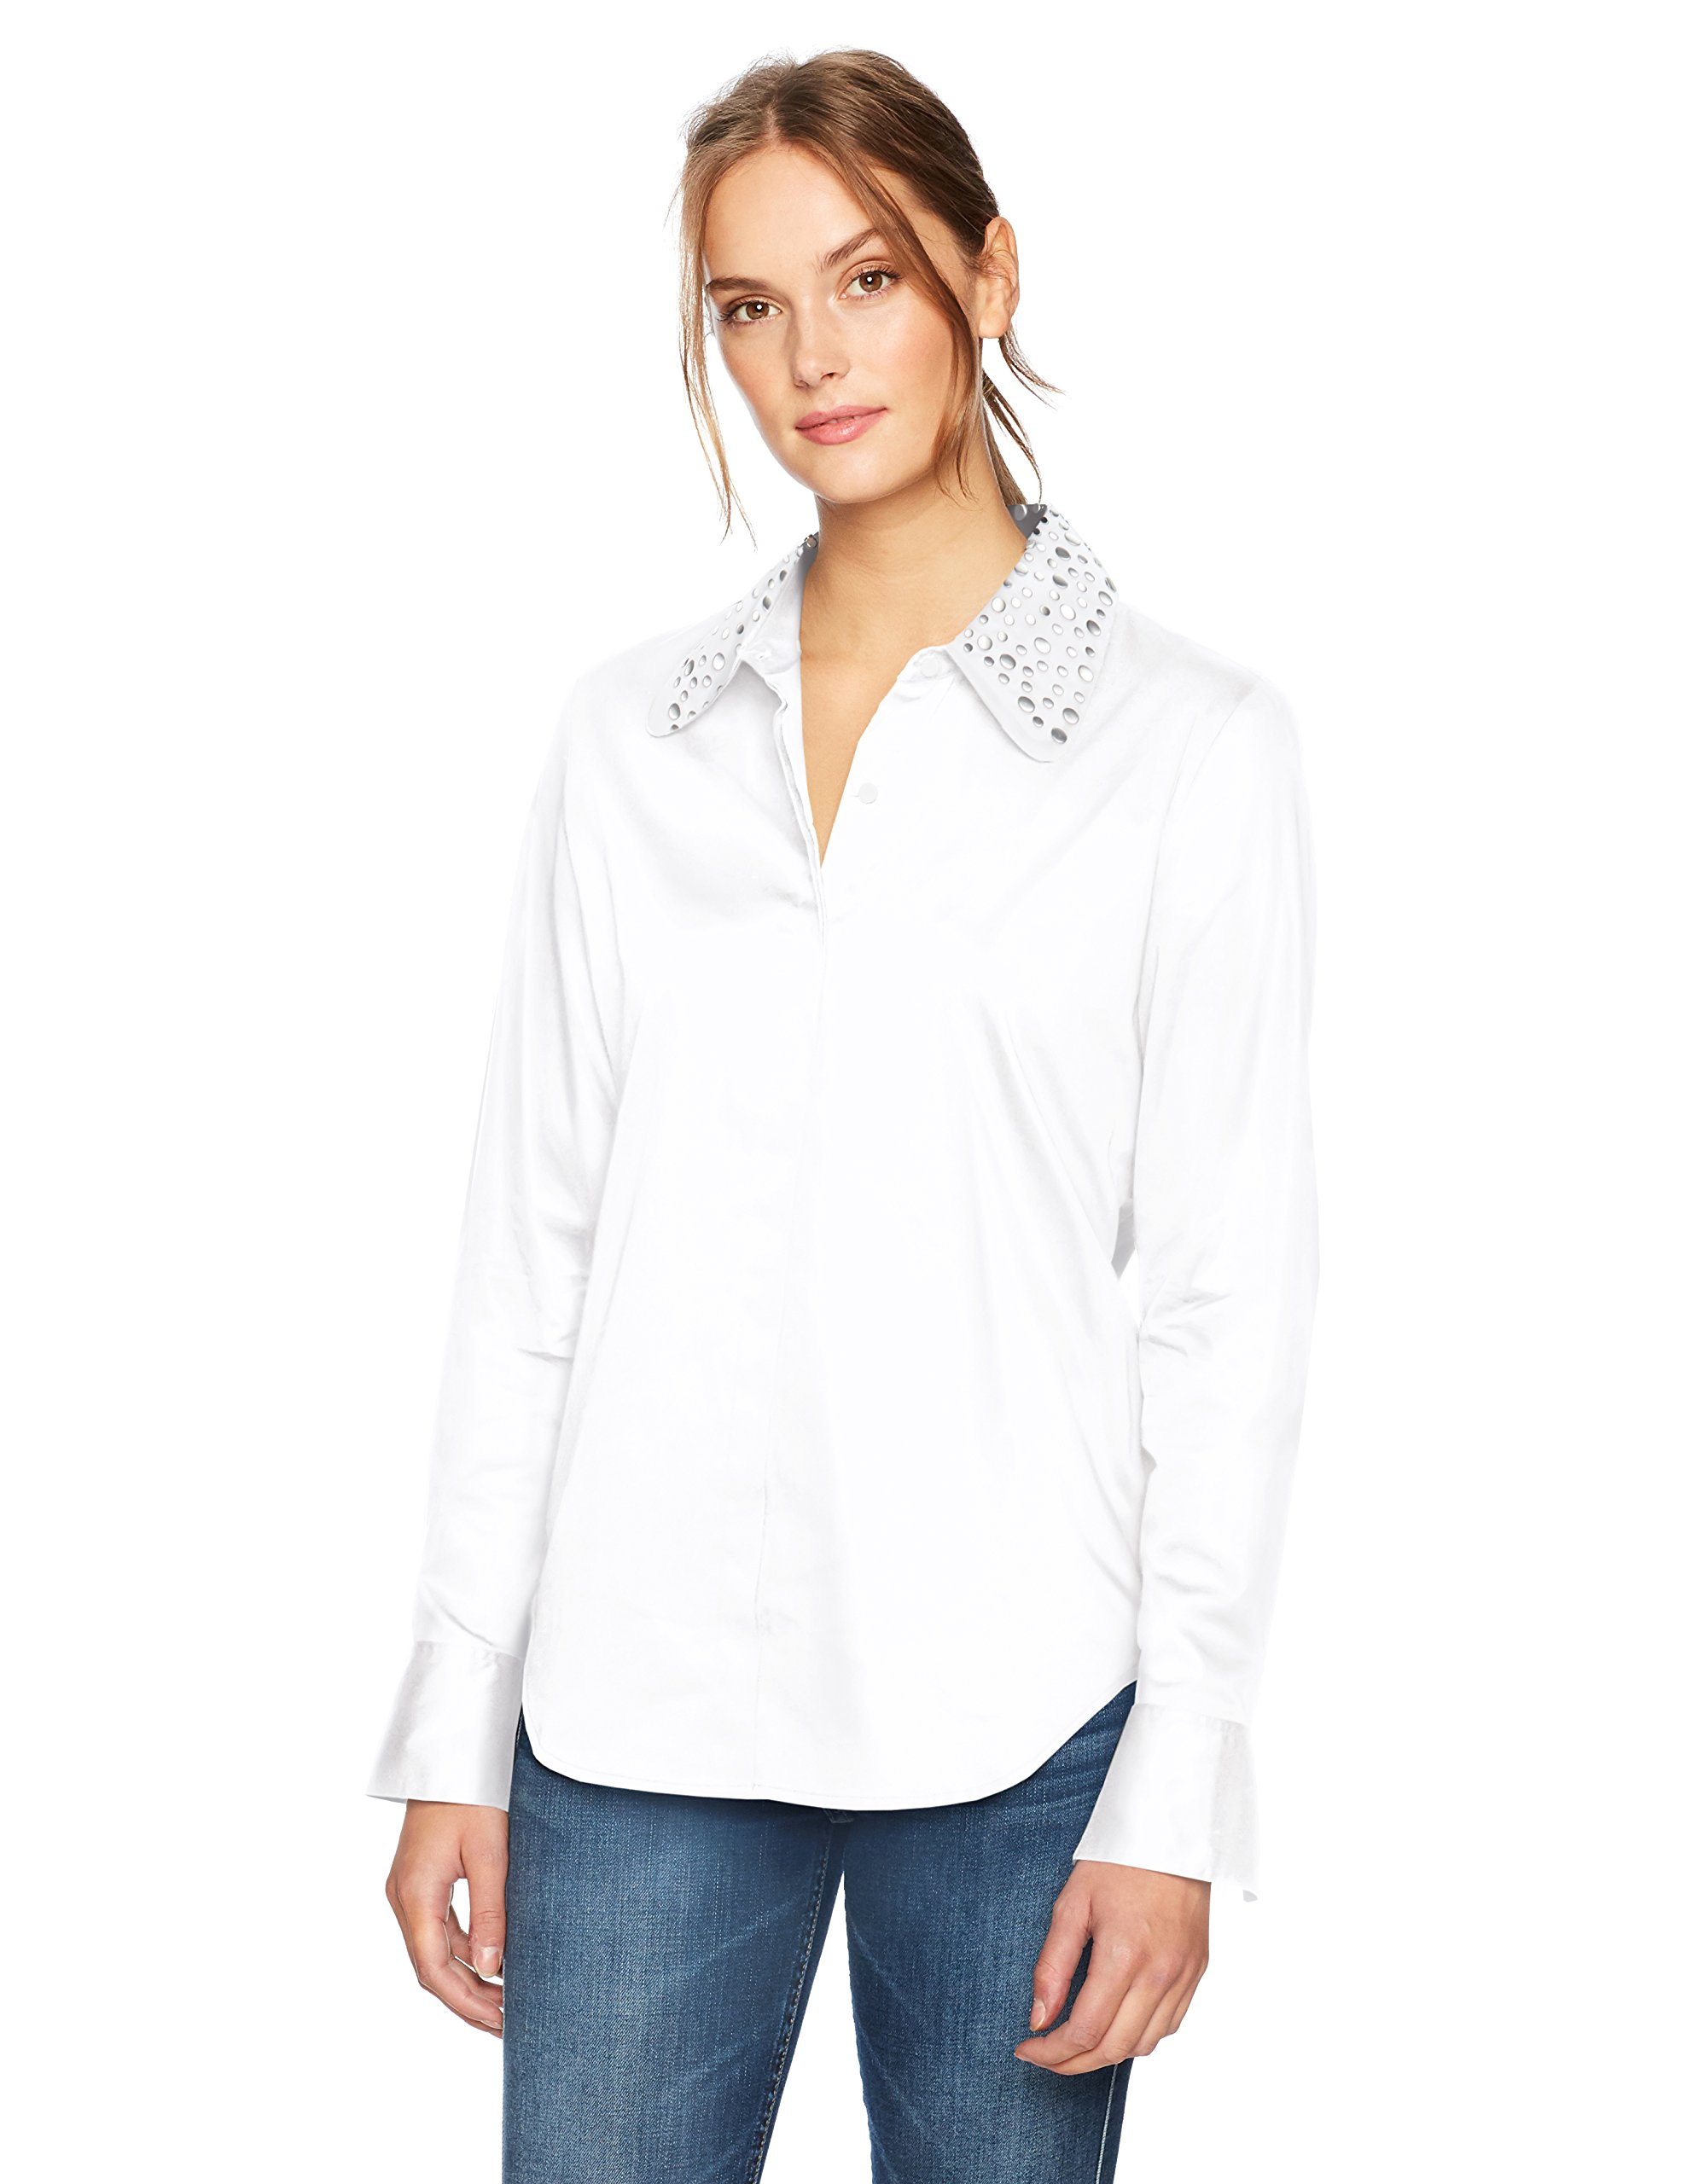 AG Adriano Goldschmied Women's Camilla Top, True White, M